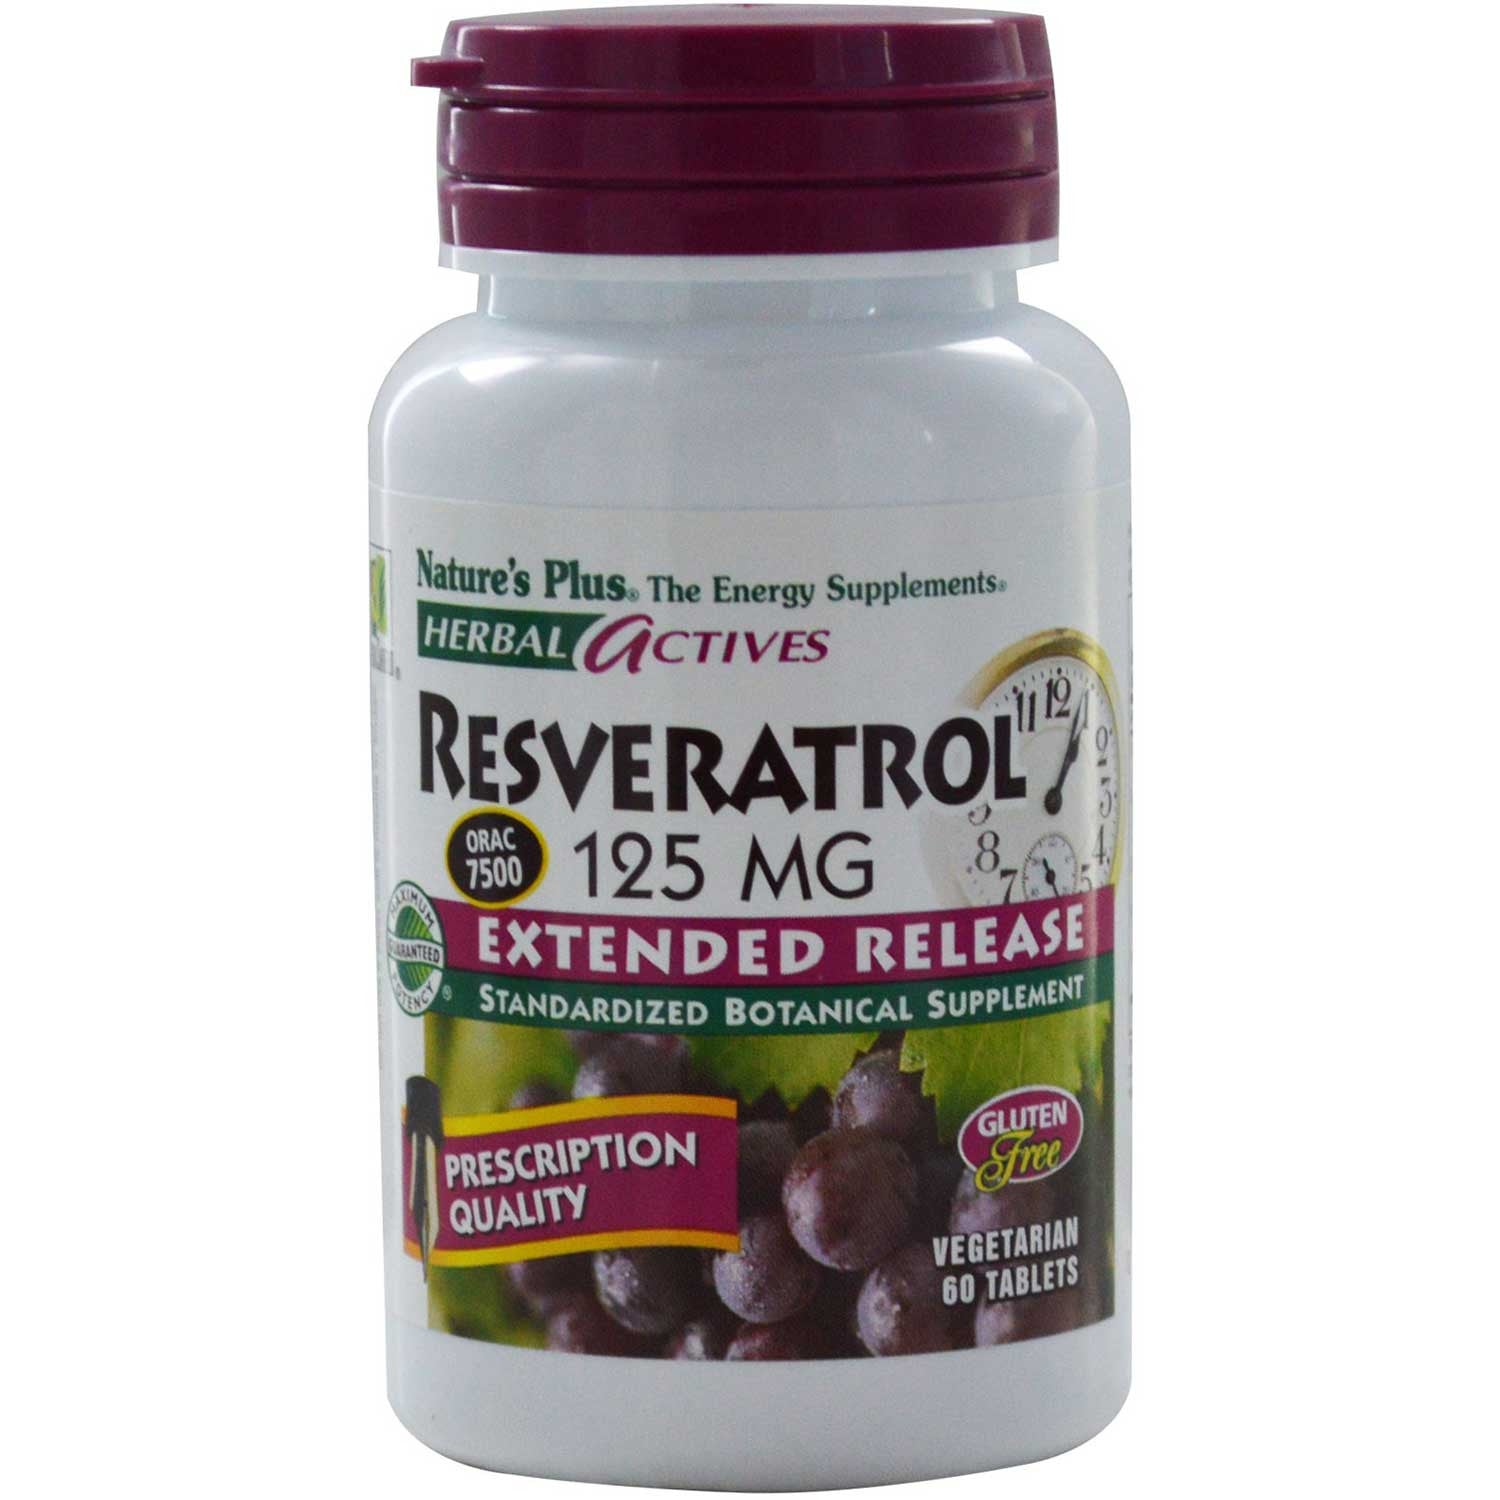 Natures Plus HerbalActives Resveratrol 125 mg (Extended Release), 60 tabs.-NaturesWisdom